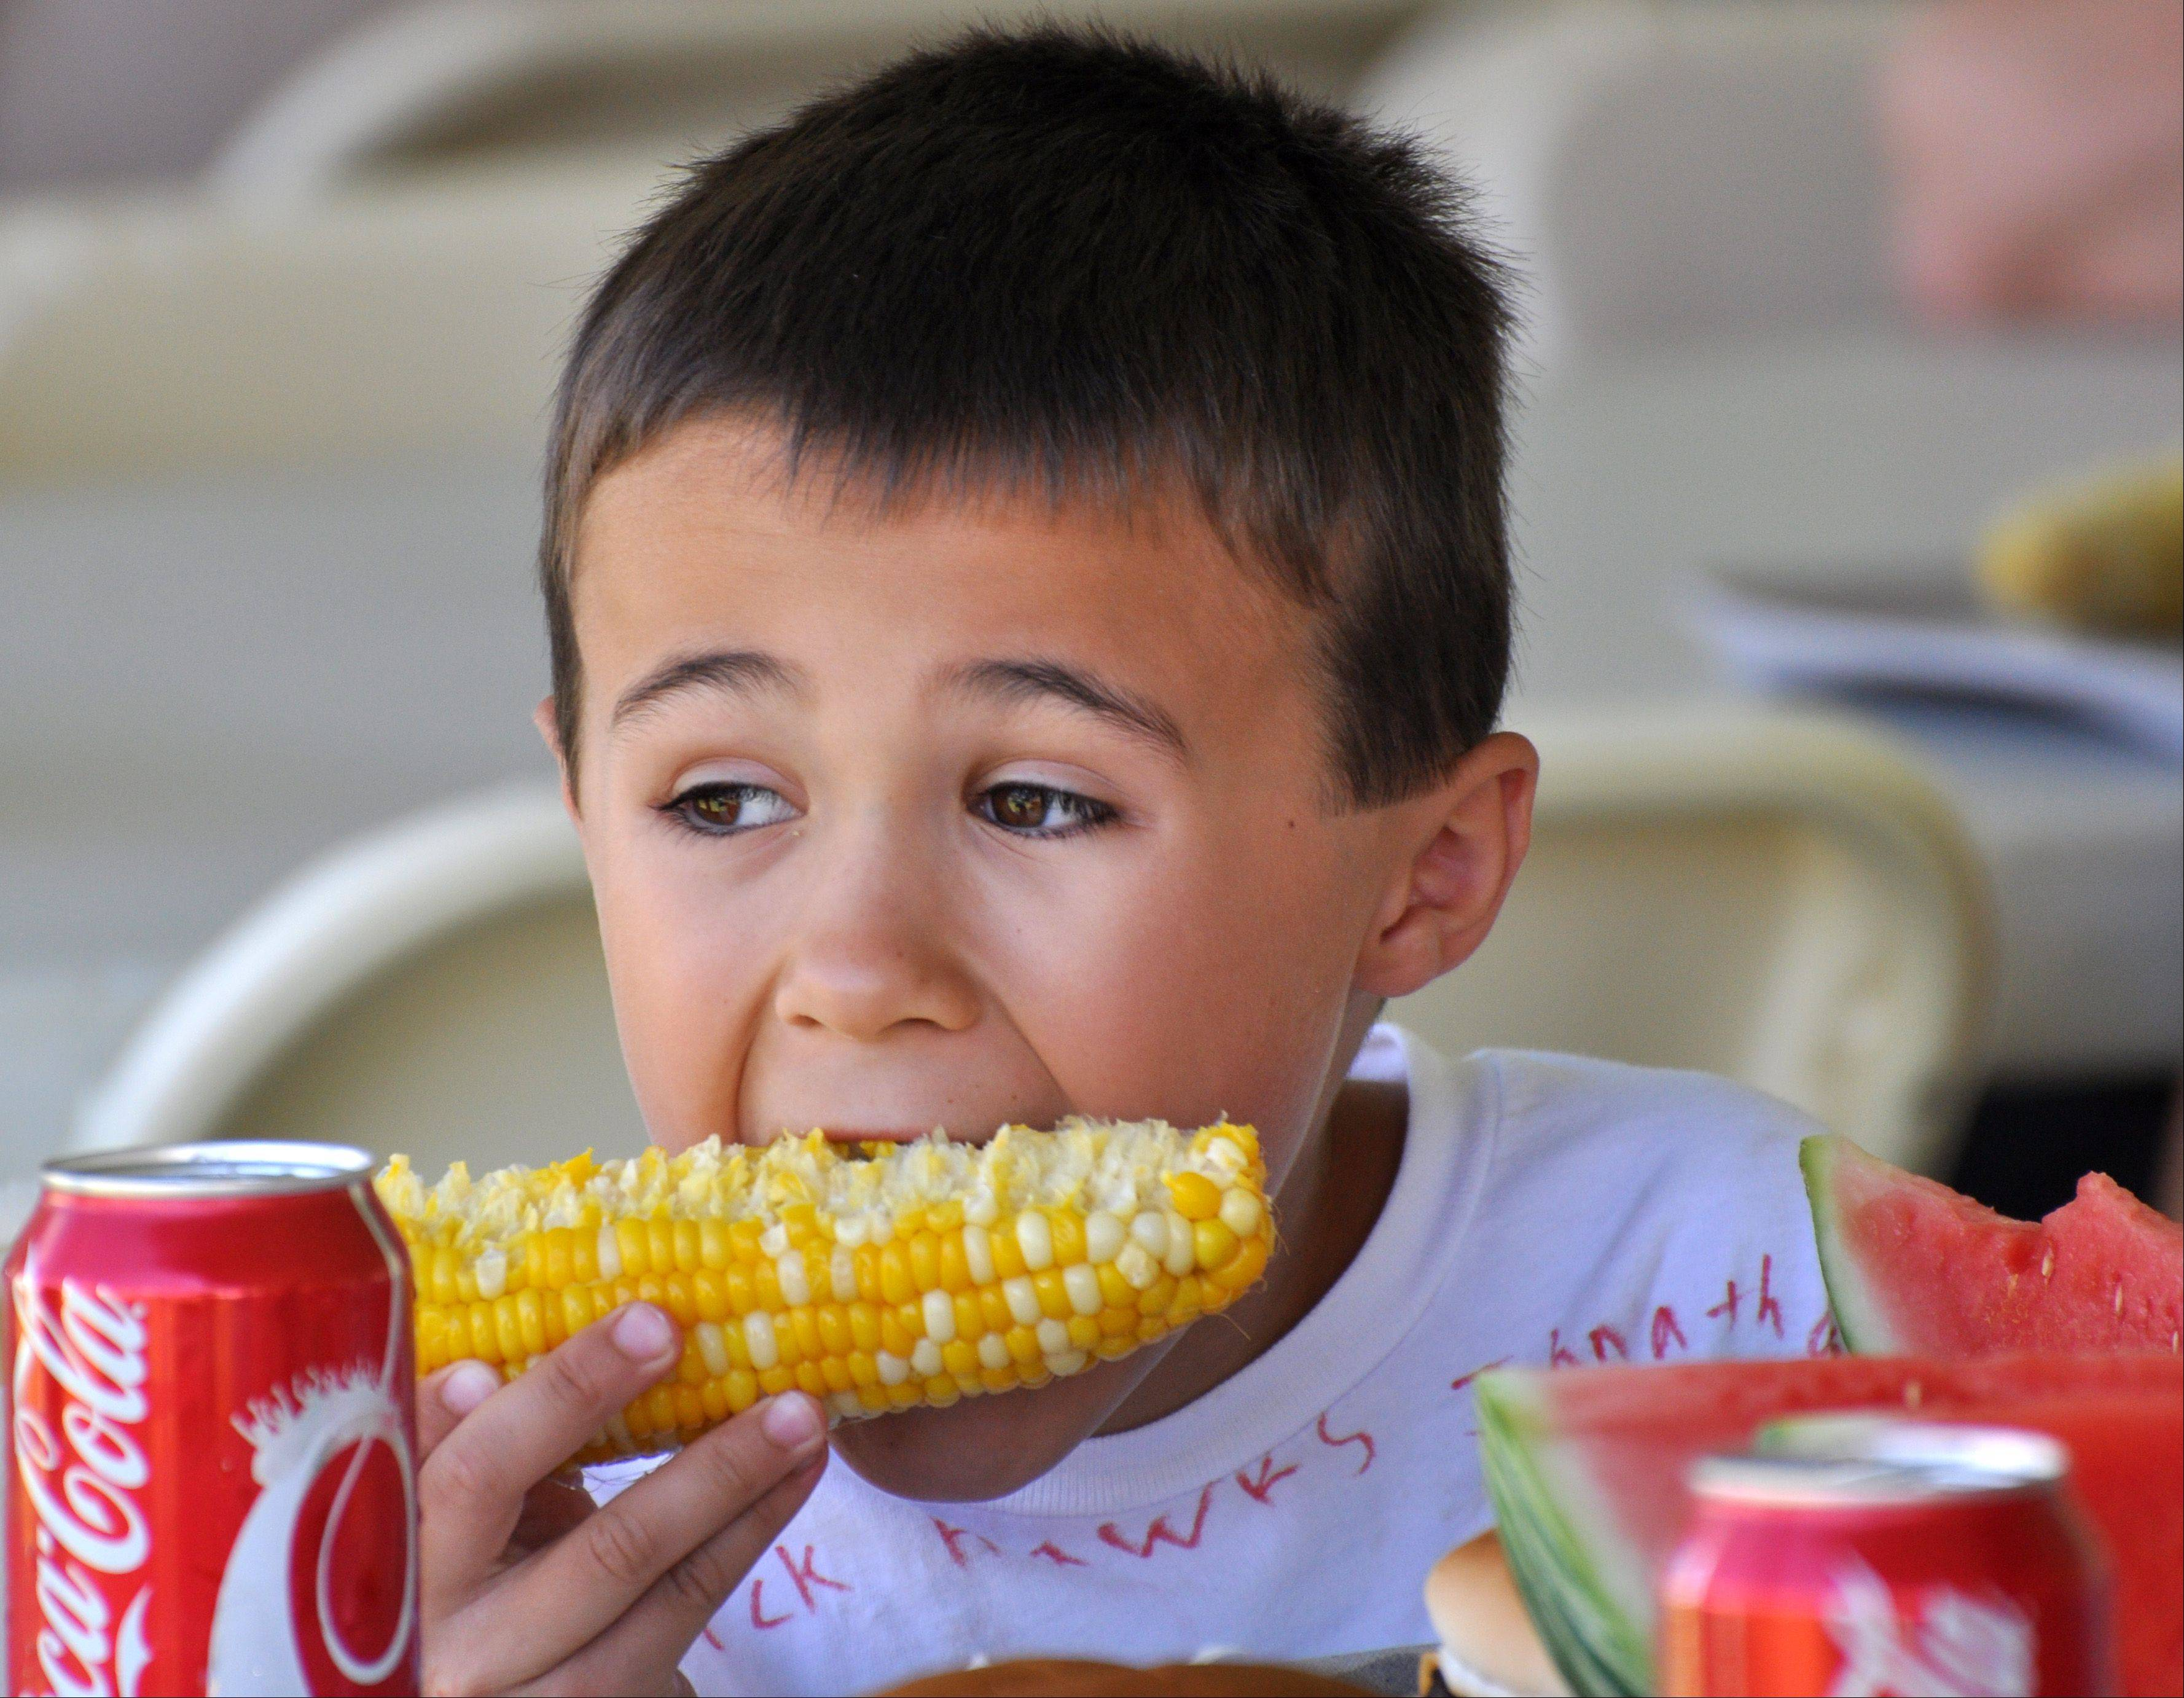 Drew Bhillibs, 7, of Arlington Heights, eats an ear of corn during the 57th annual Cornfest in Rolling Meadows Saturday, August 3.